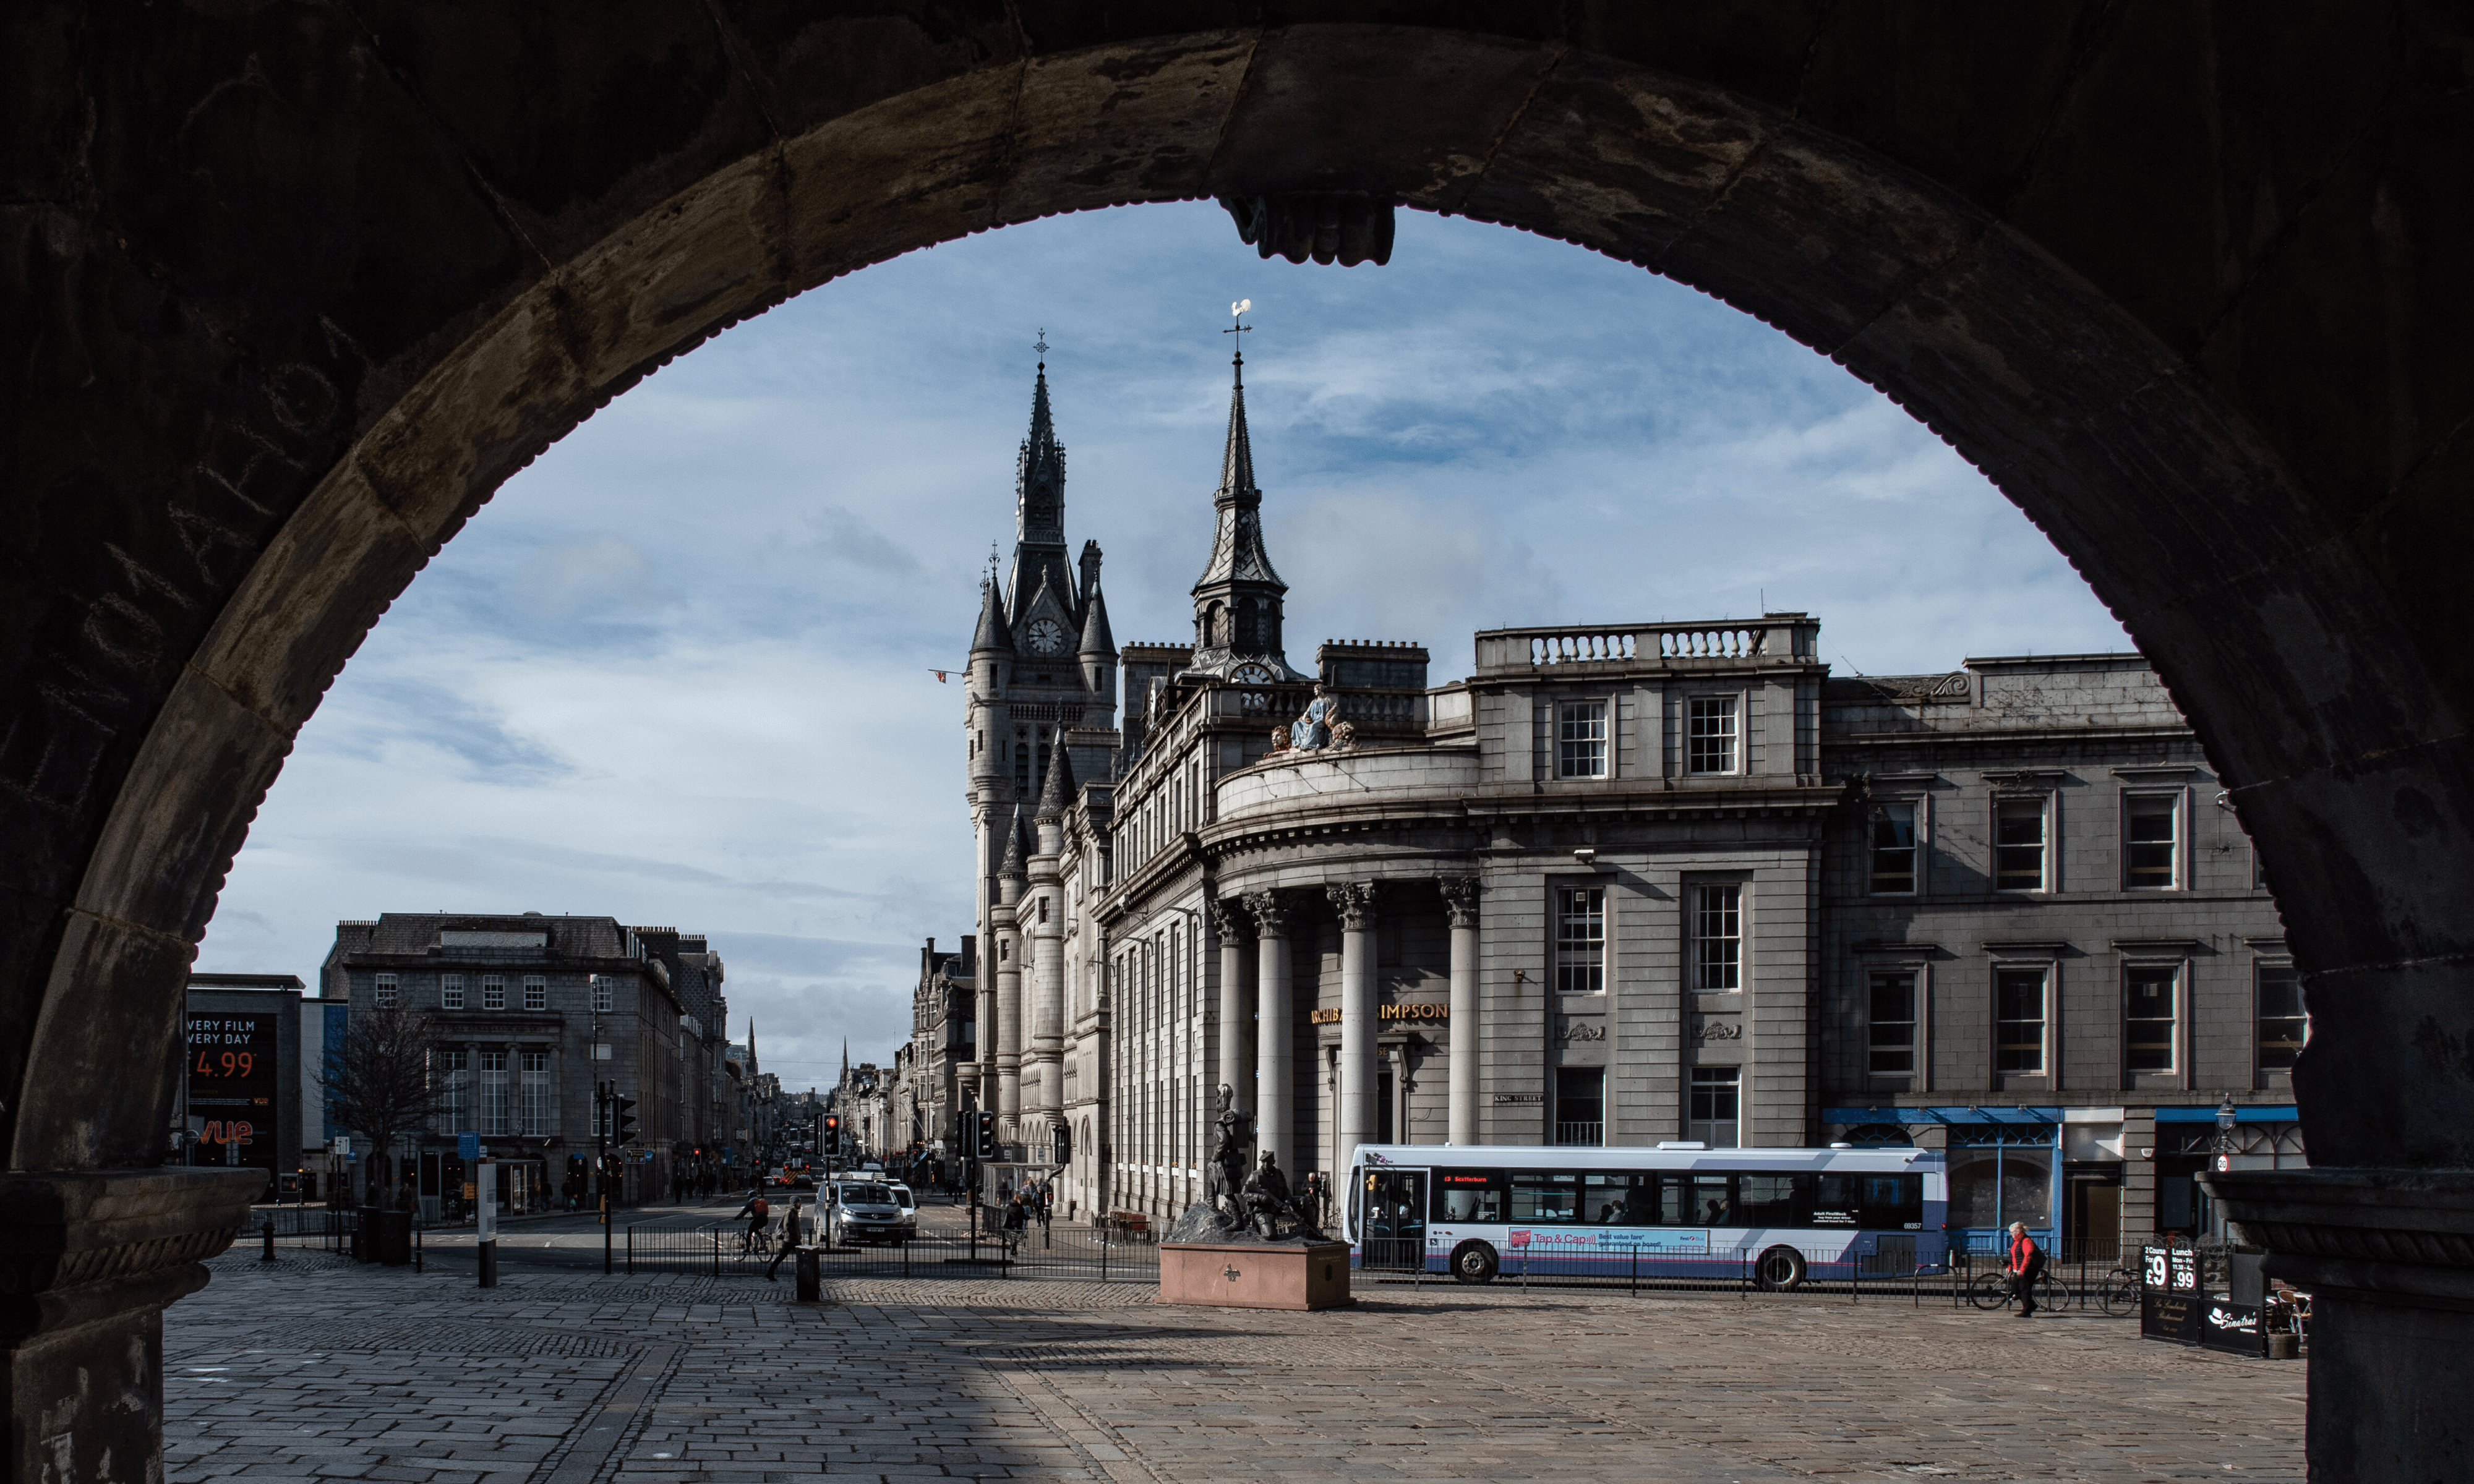 Aberdeen city high street